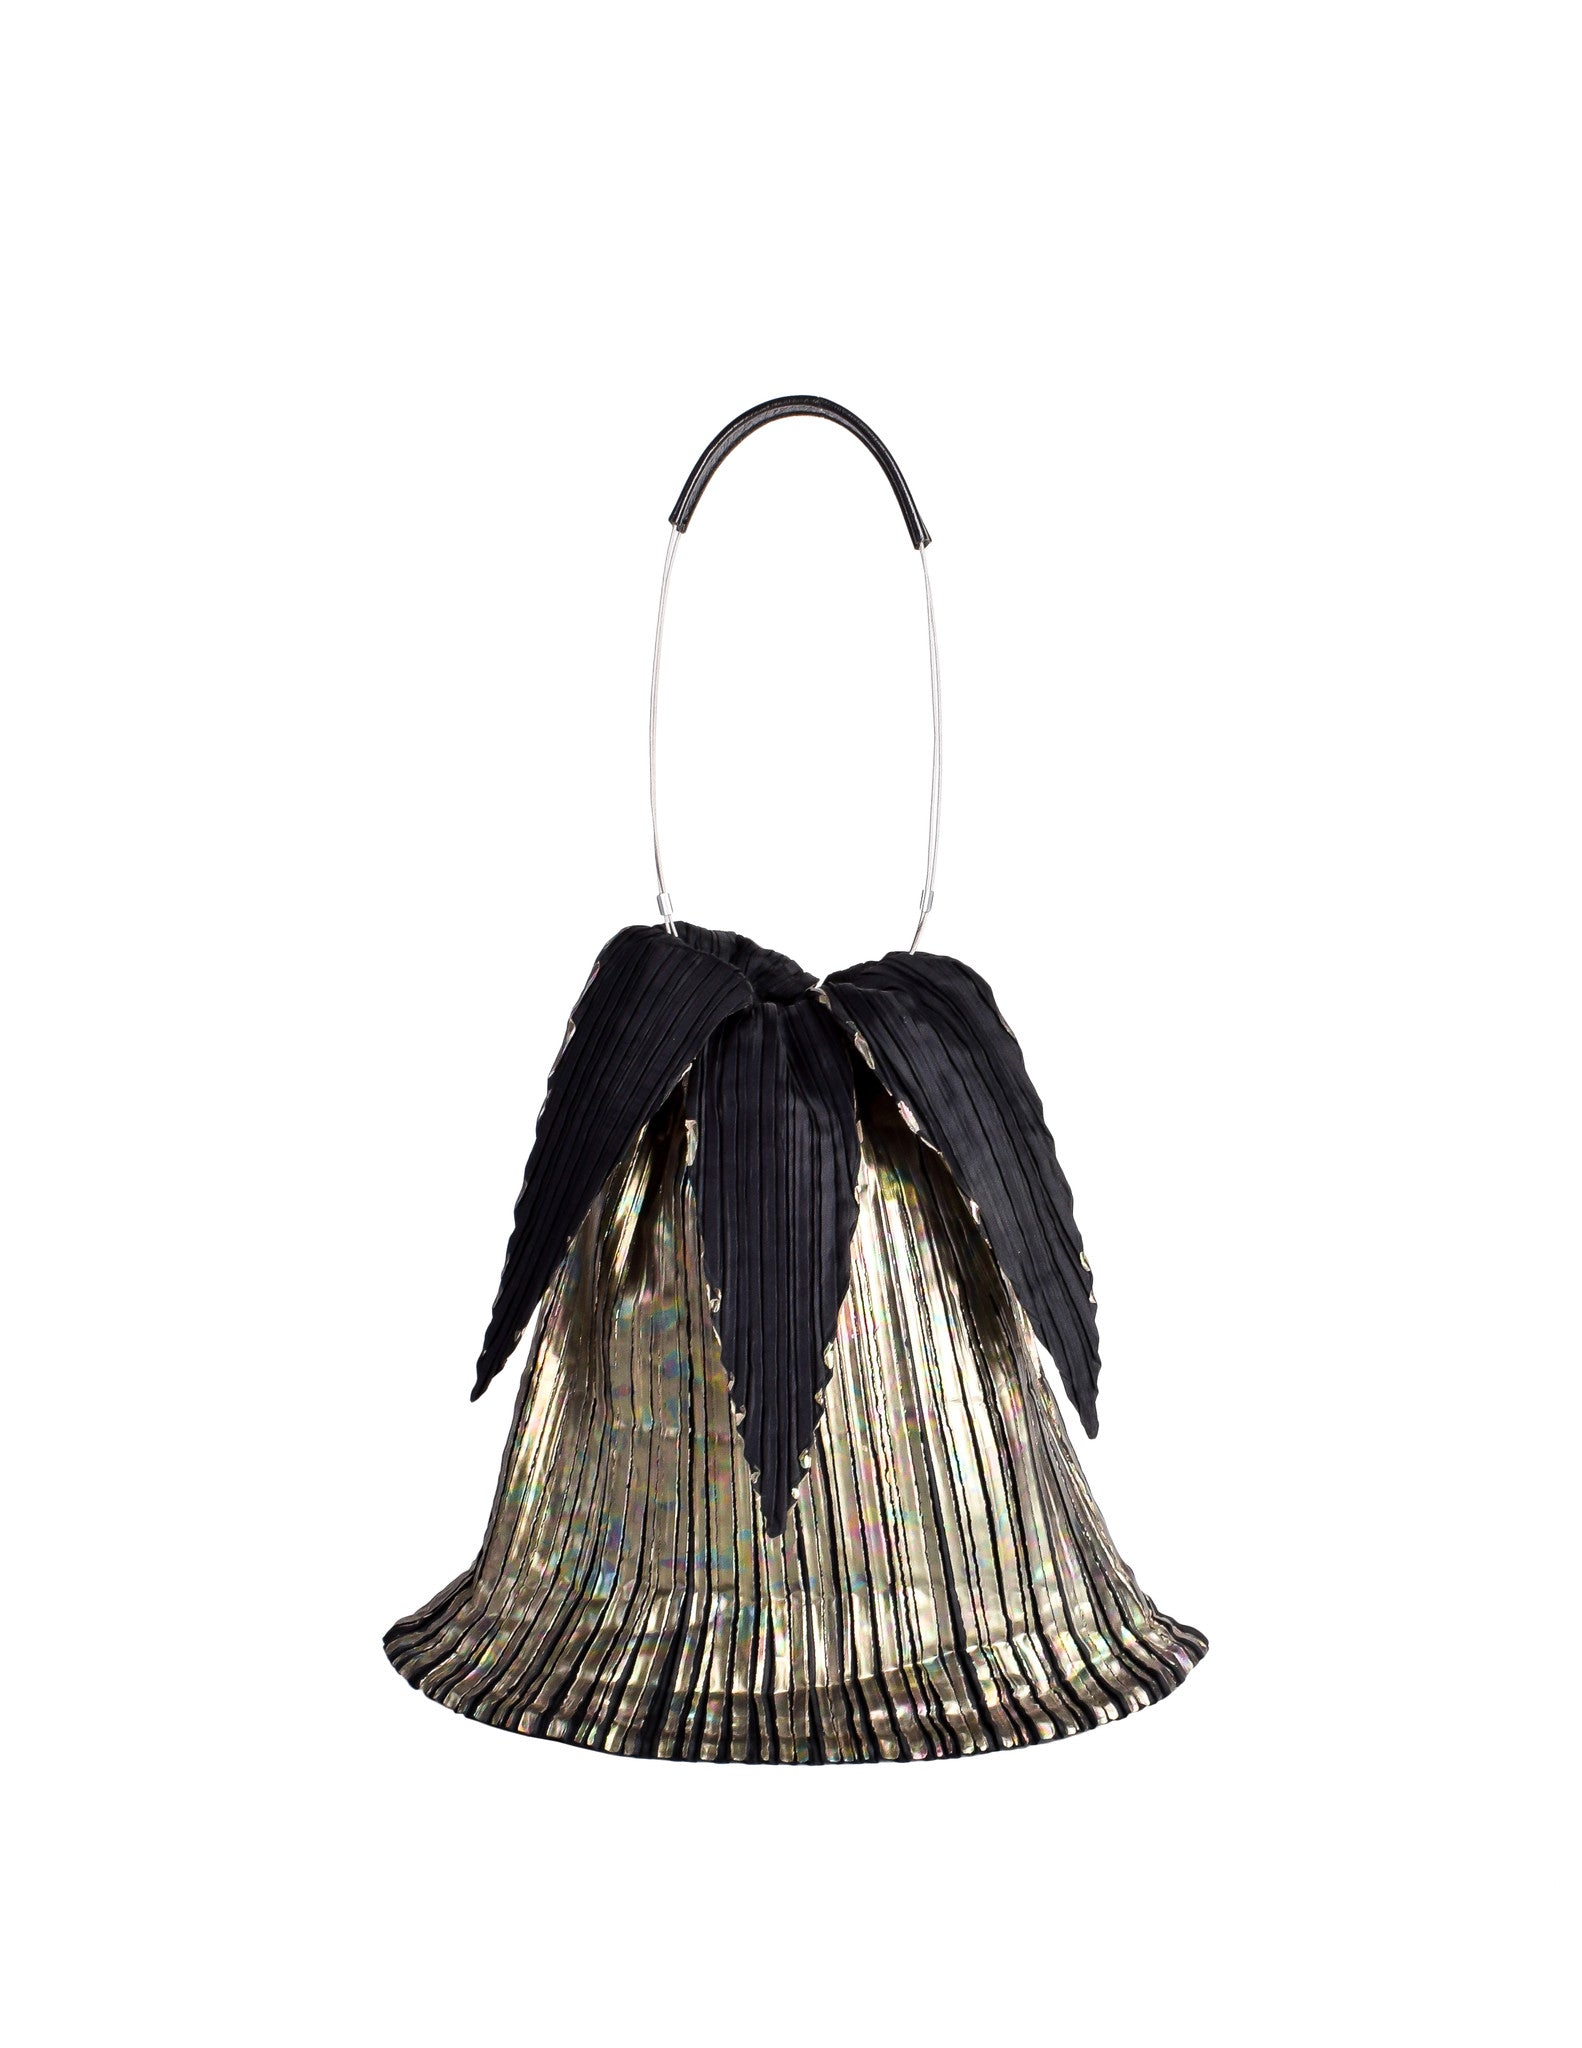 Issey Miyake Vintage Black & Gold Iridescent Pleated Bag - Amarcord Vintage Fashion  - 1